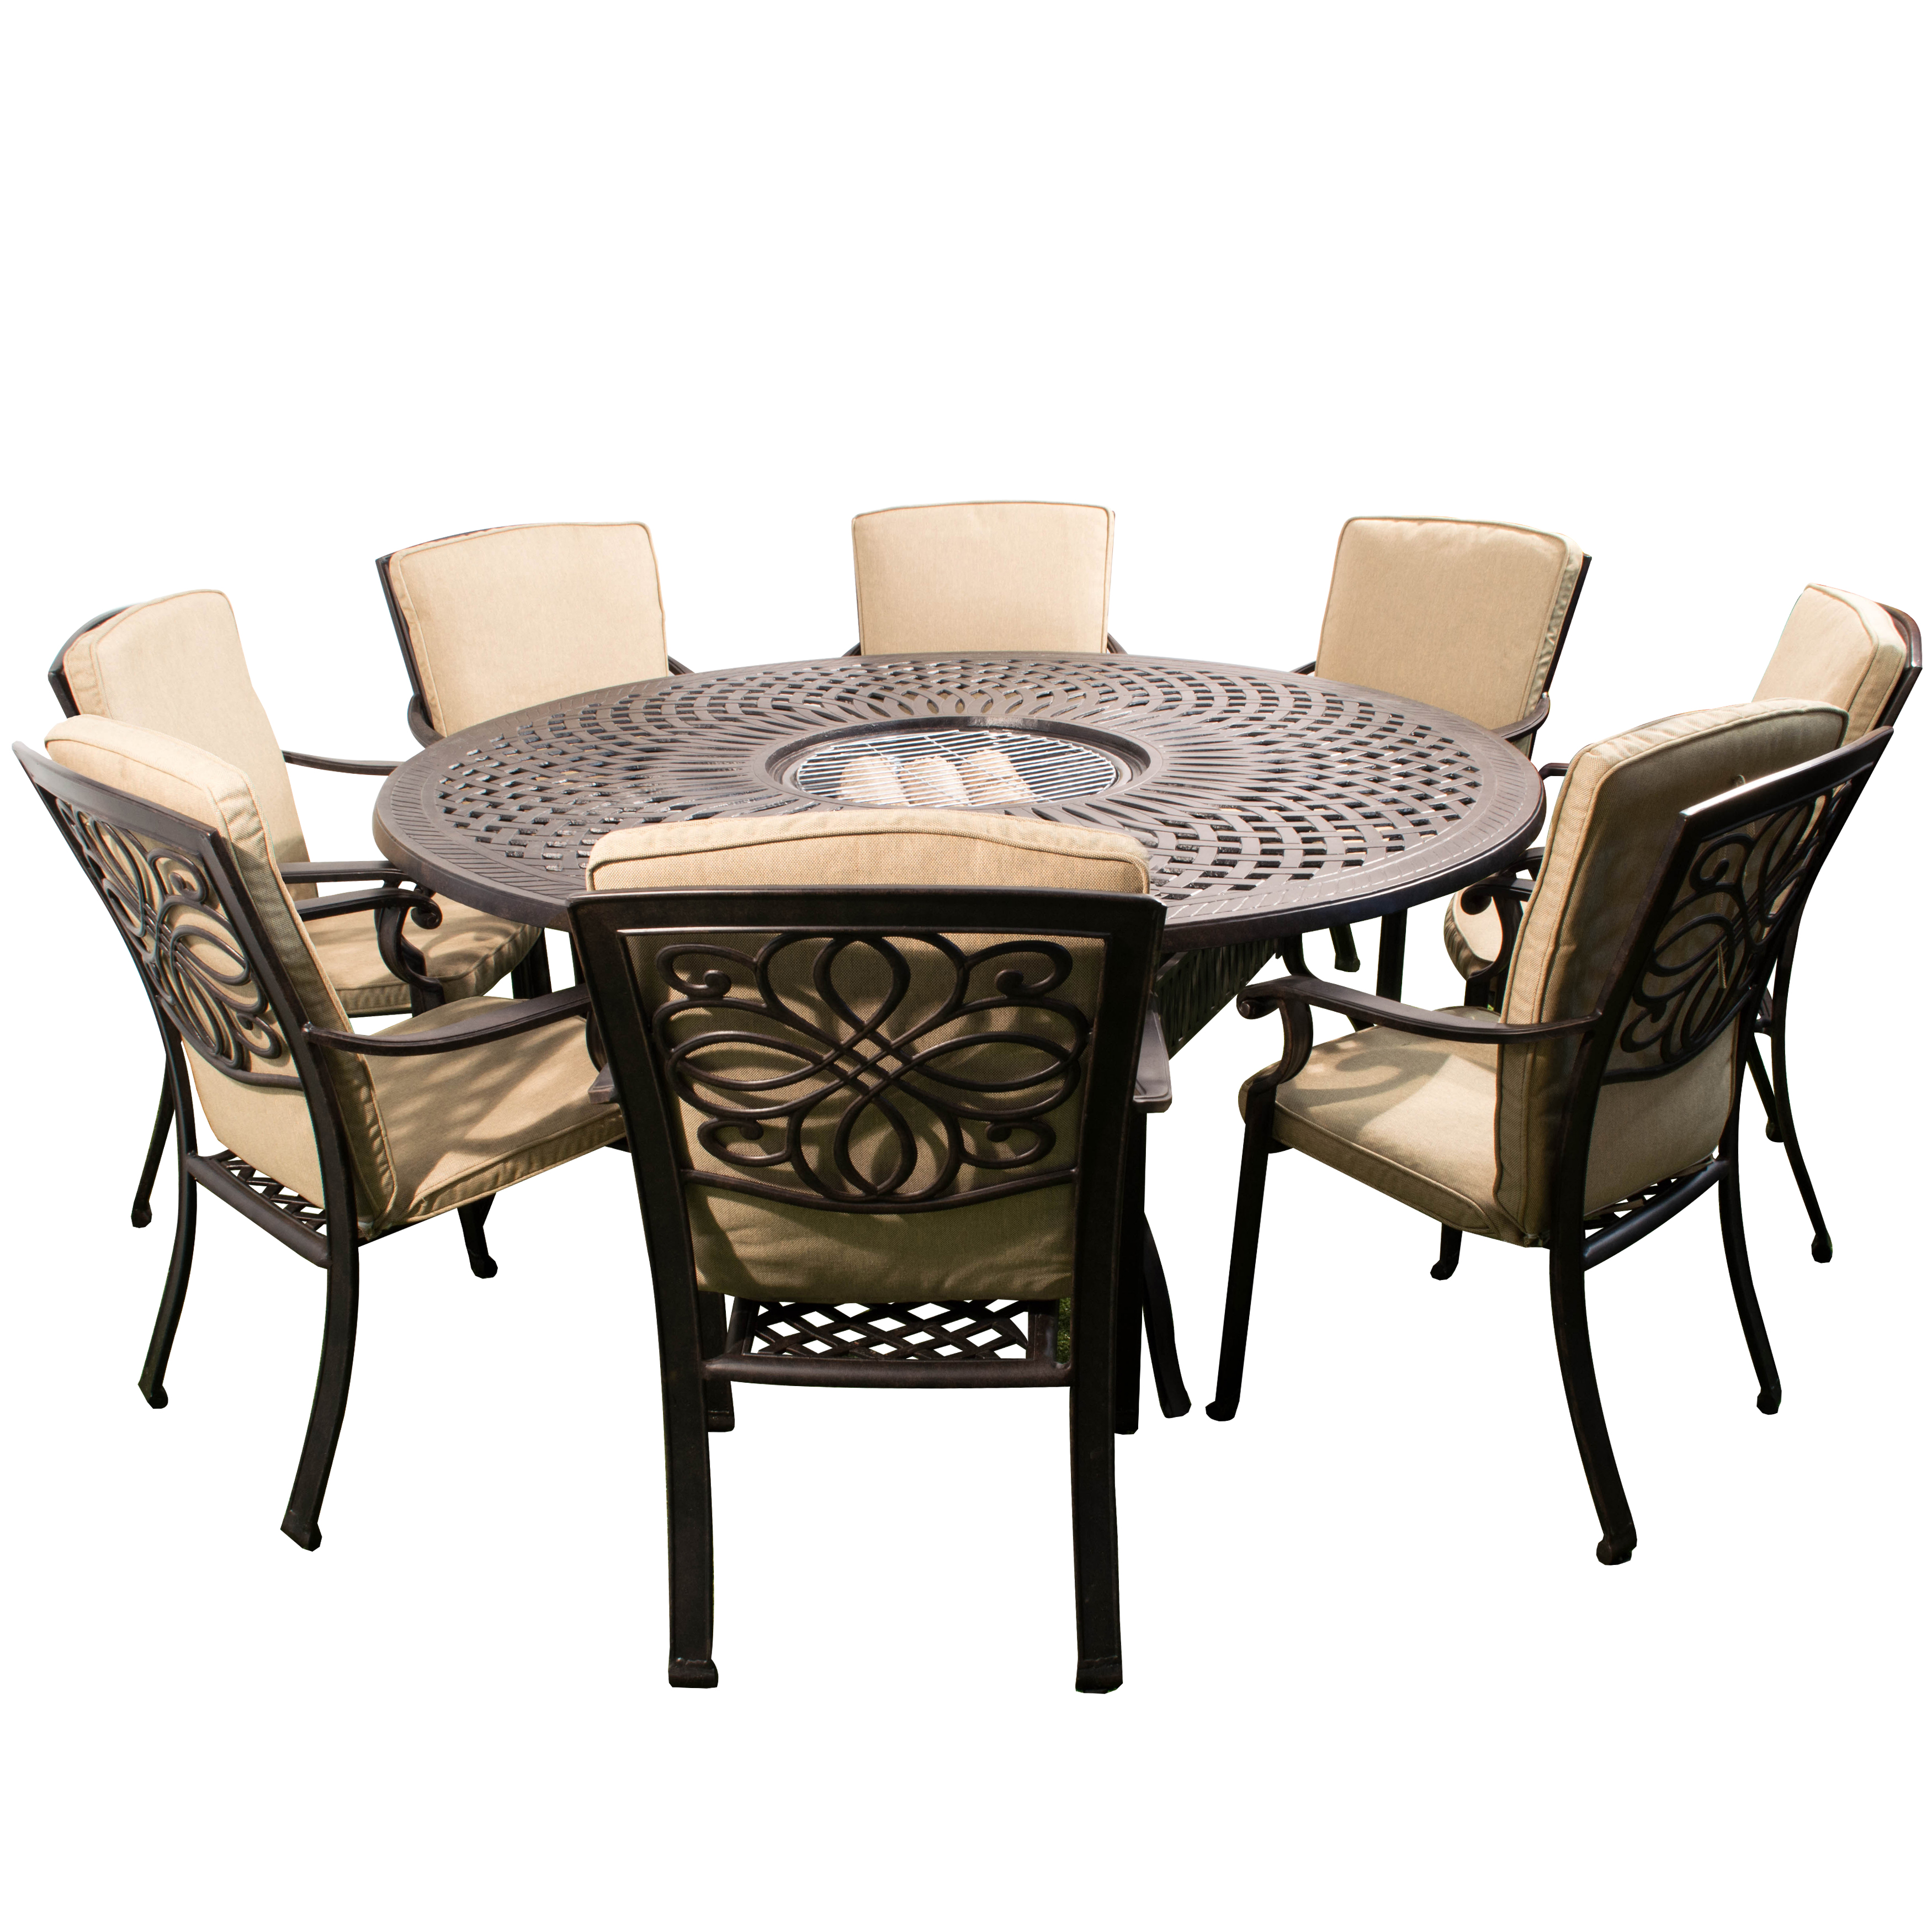 Costco Dining Chairs Canada Fire Pit Table And Chairs Set Costco Design And Ideas